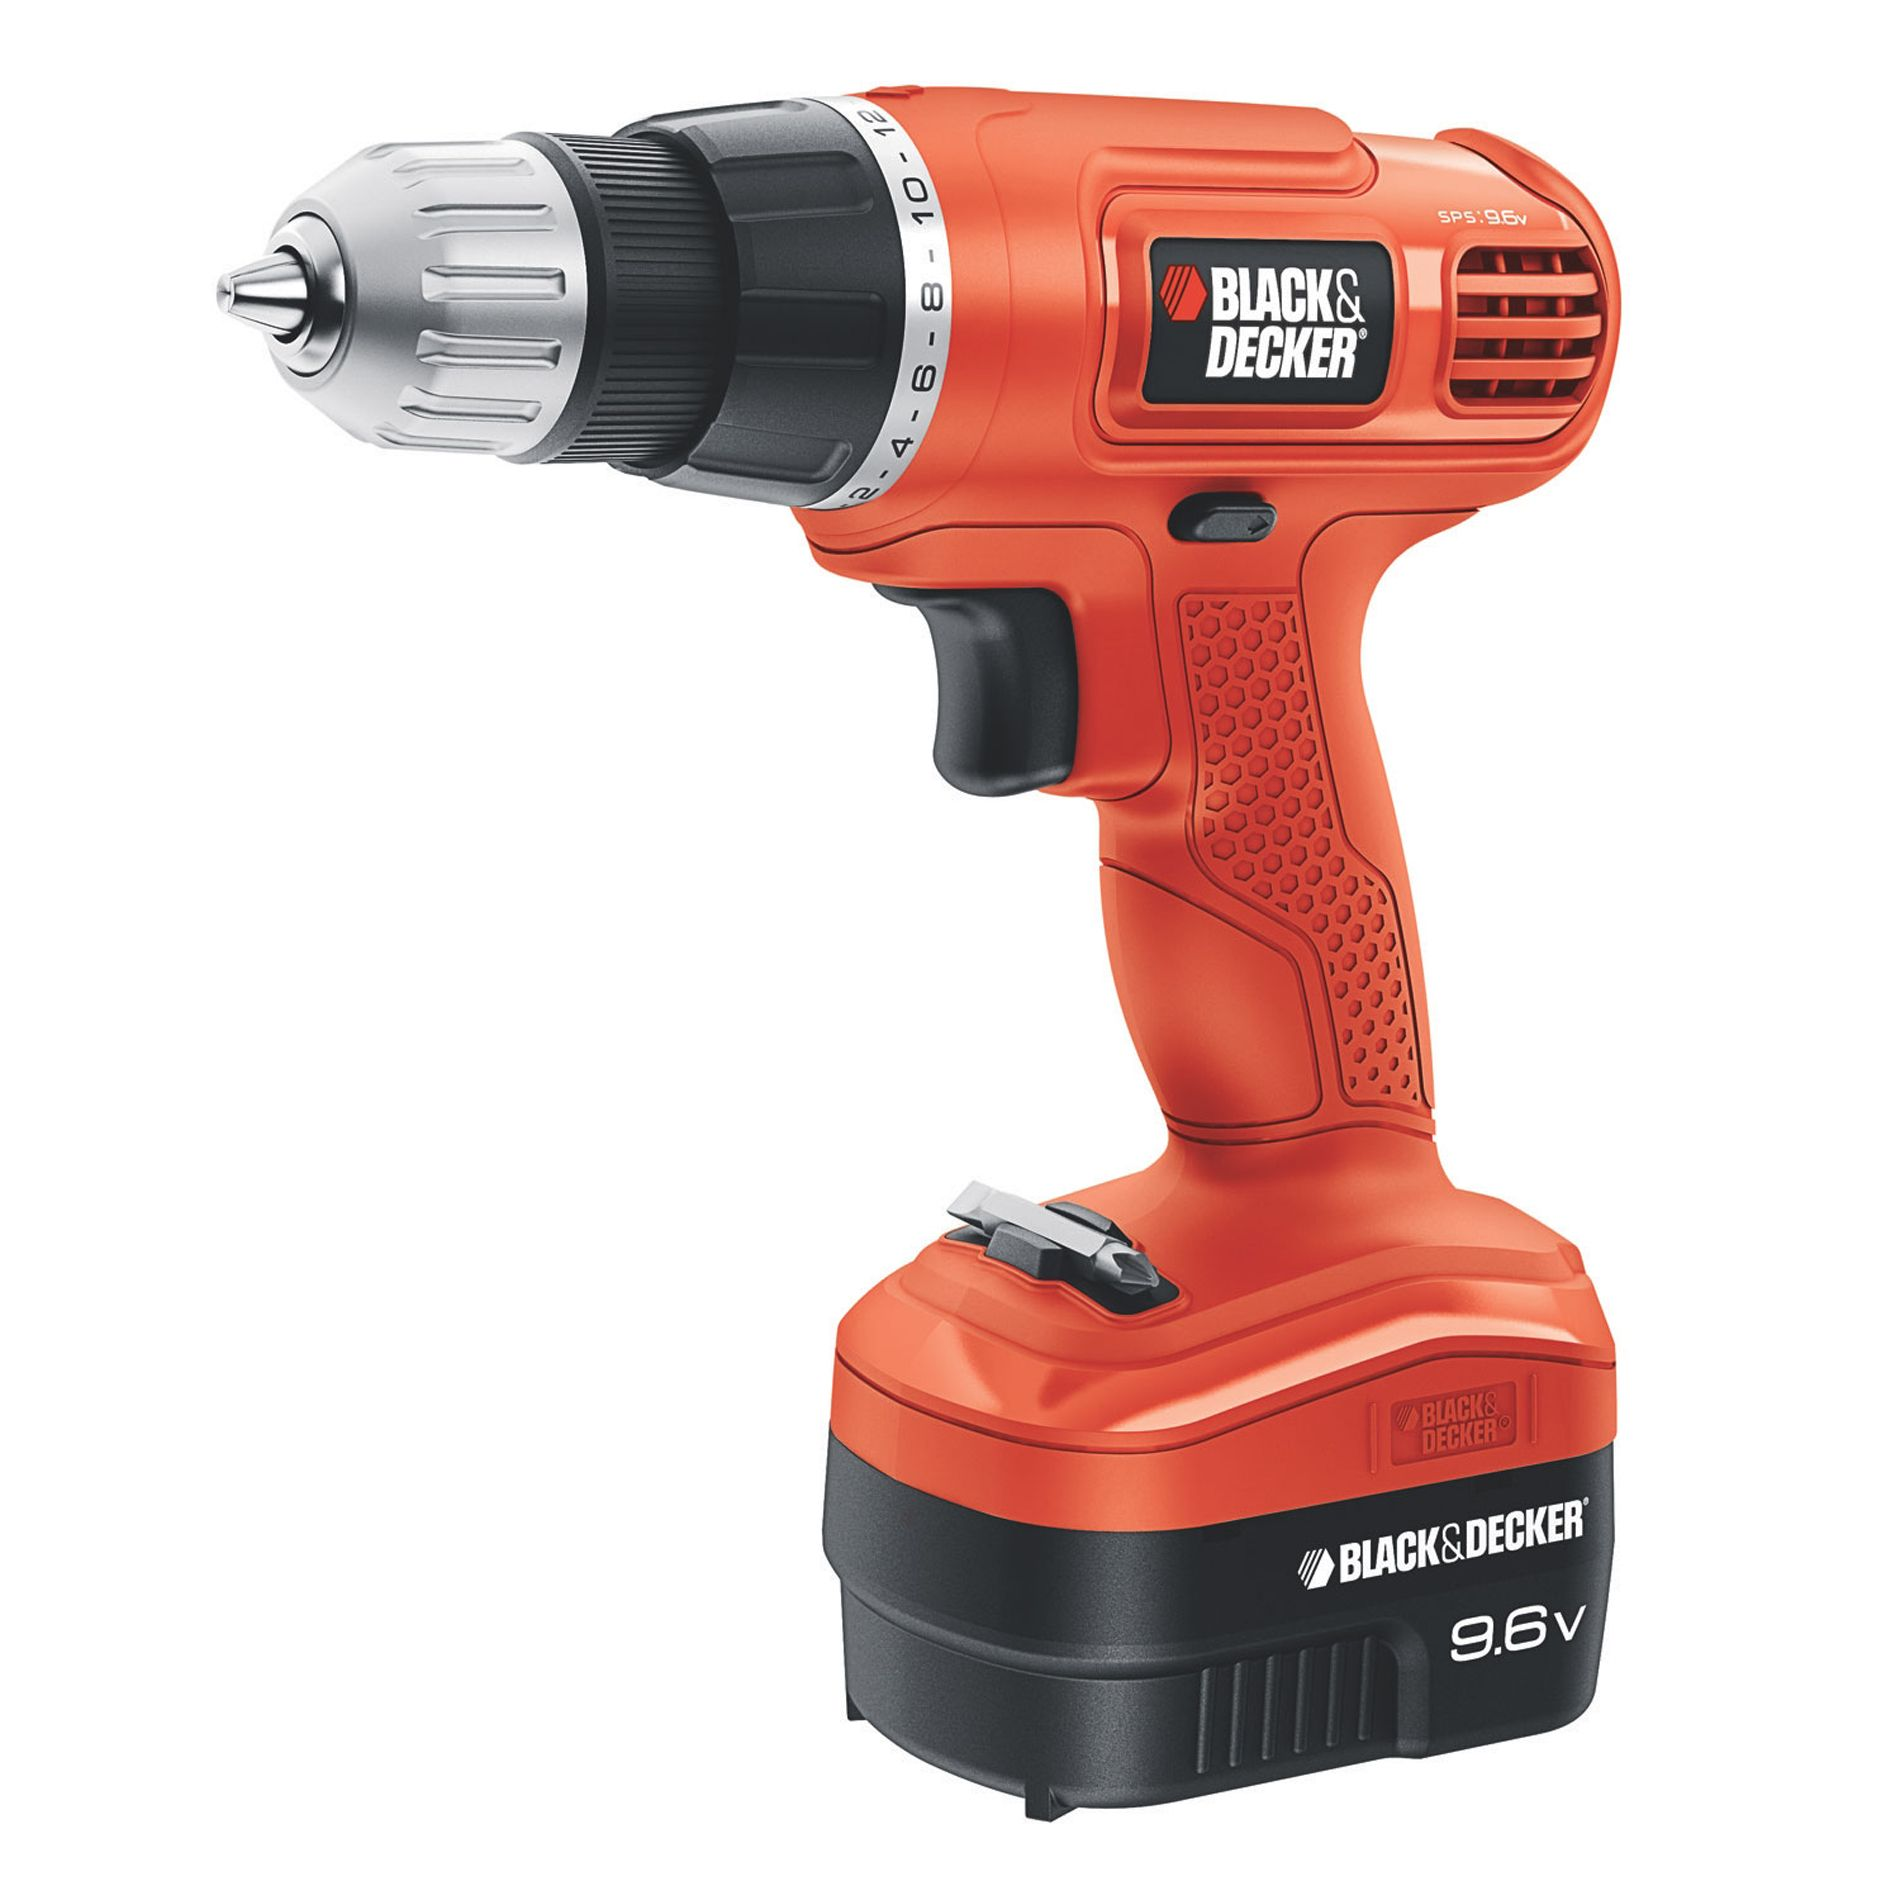 Black and Decker 9.6V Cordless Drill/Driver